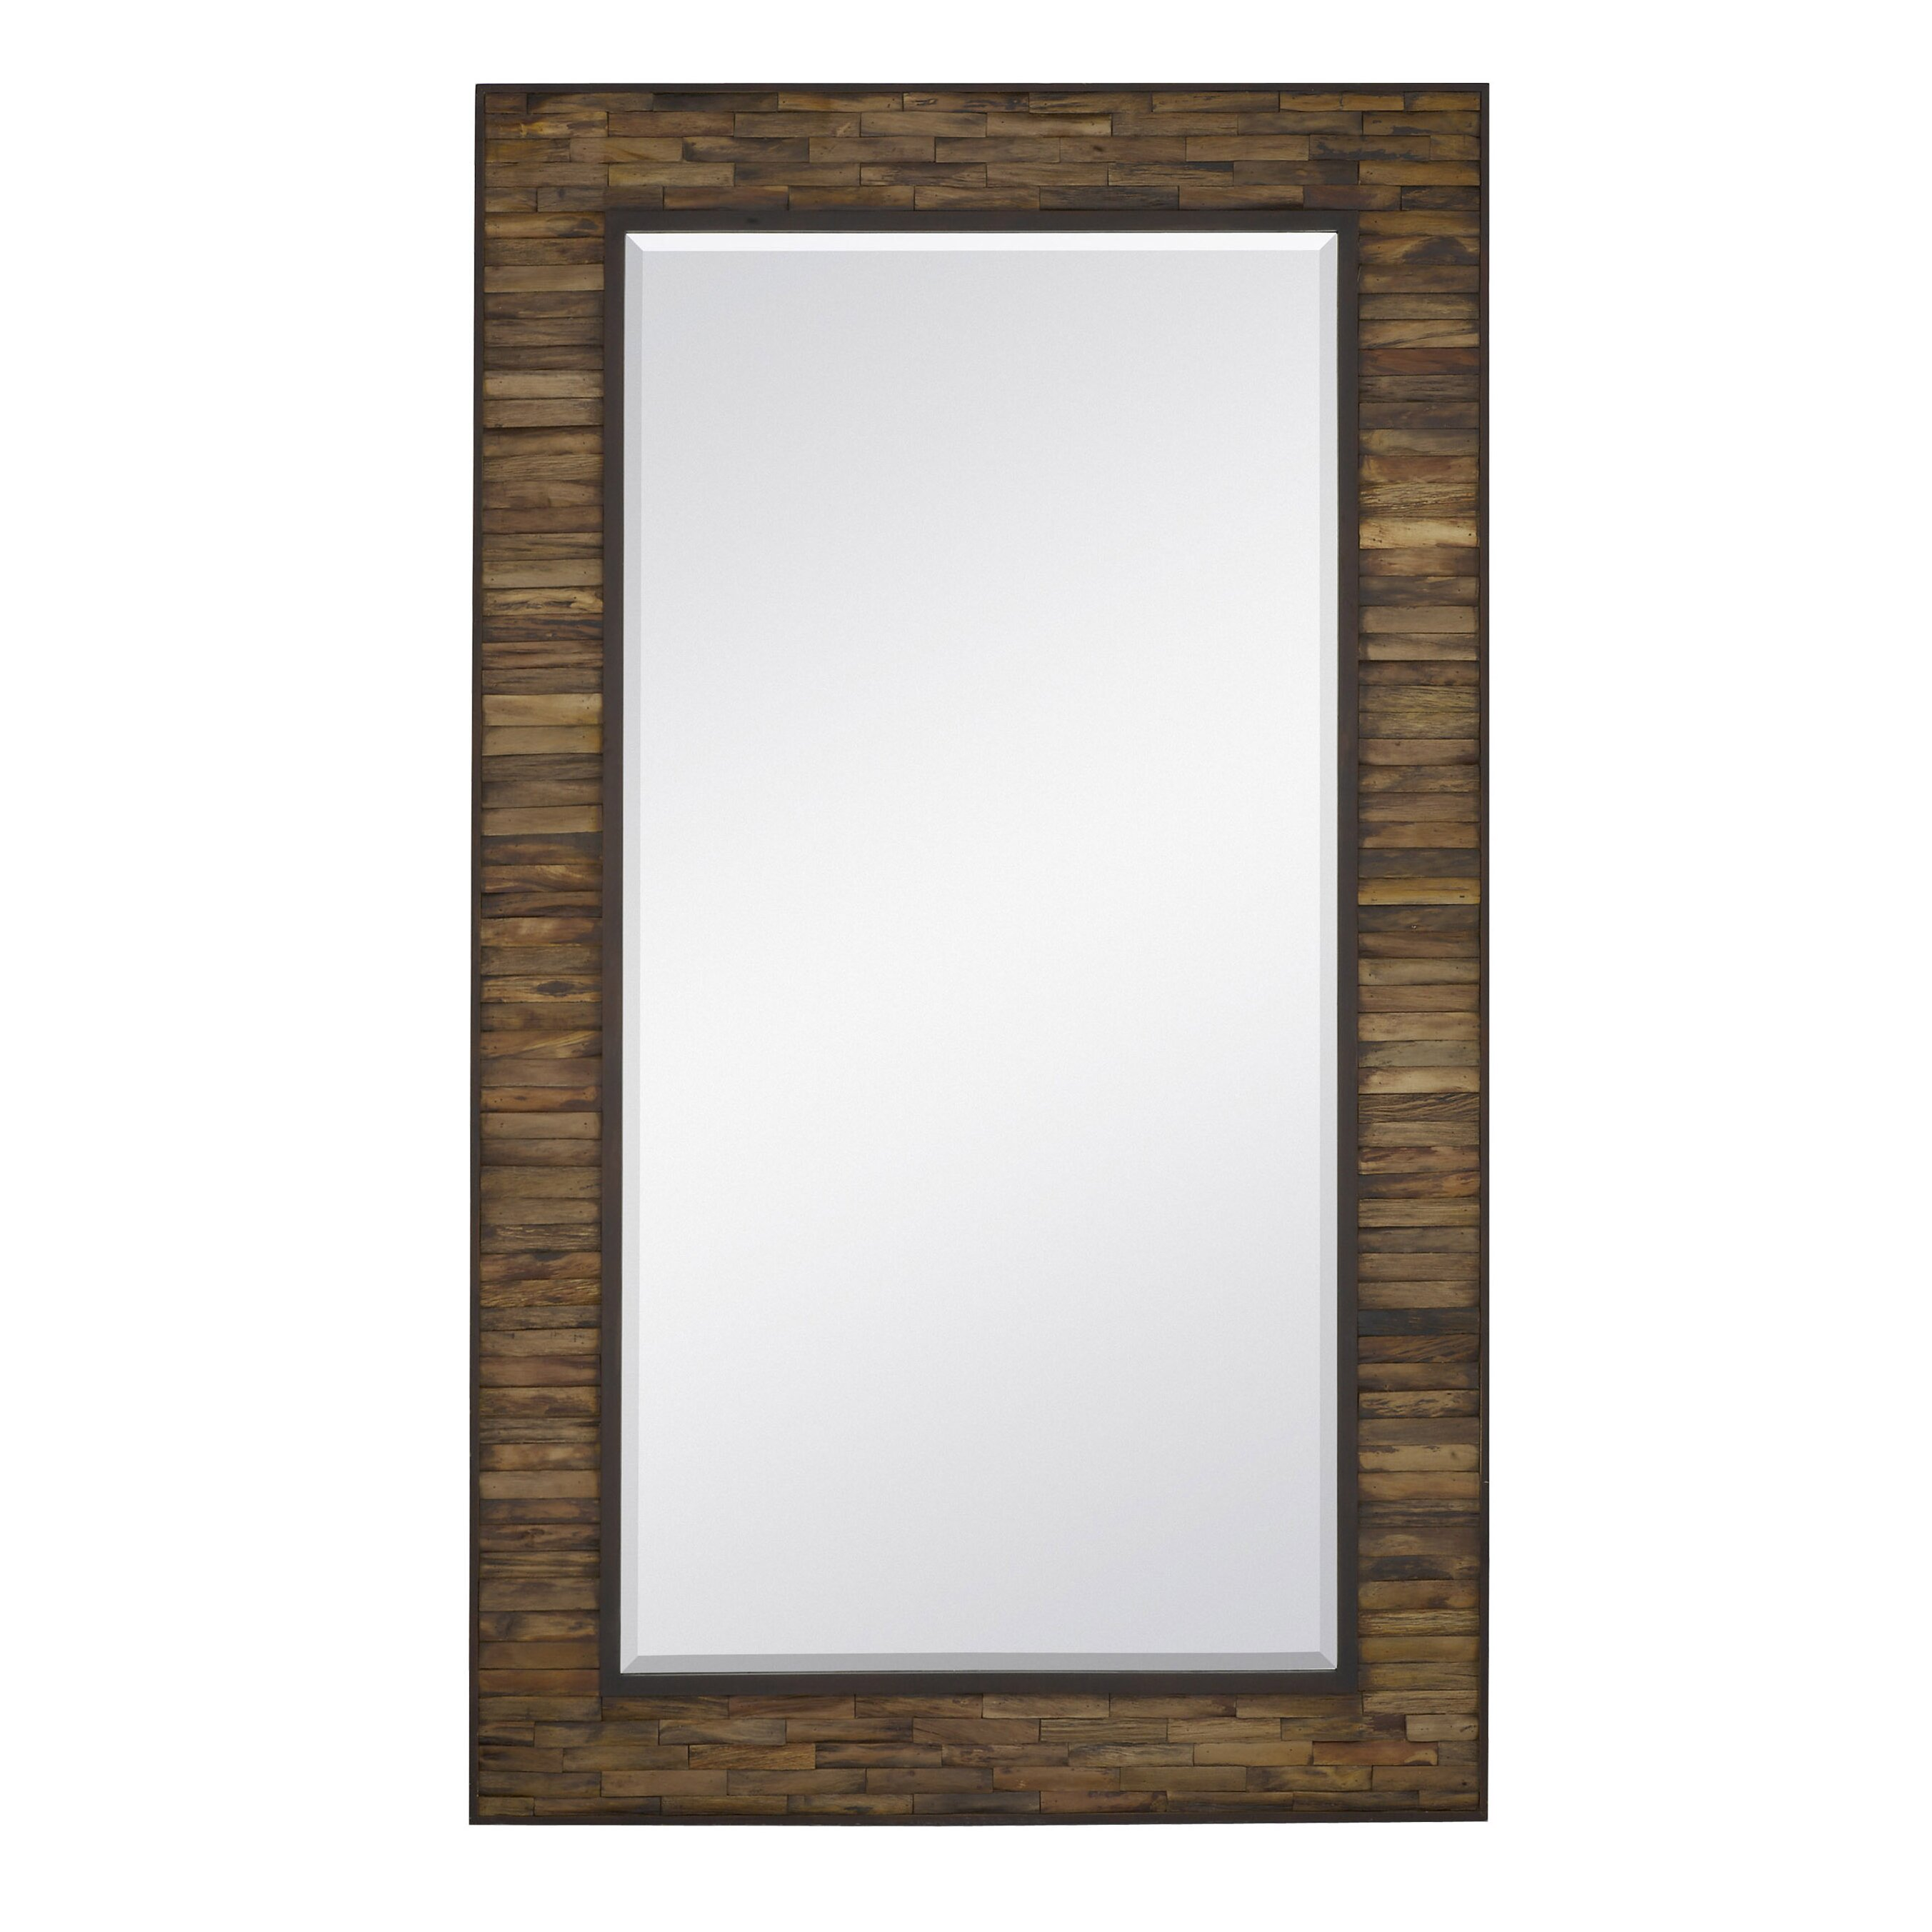 majestic mirror oversized rectangular natural wood with mahogany border full length wall mirror. Black Bedroom Furniture Sets. Home Design Ideas